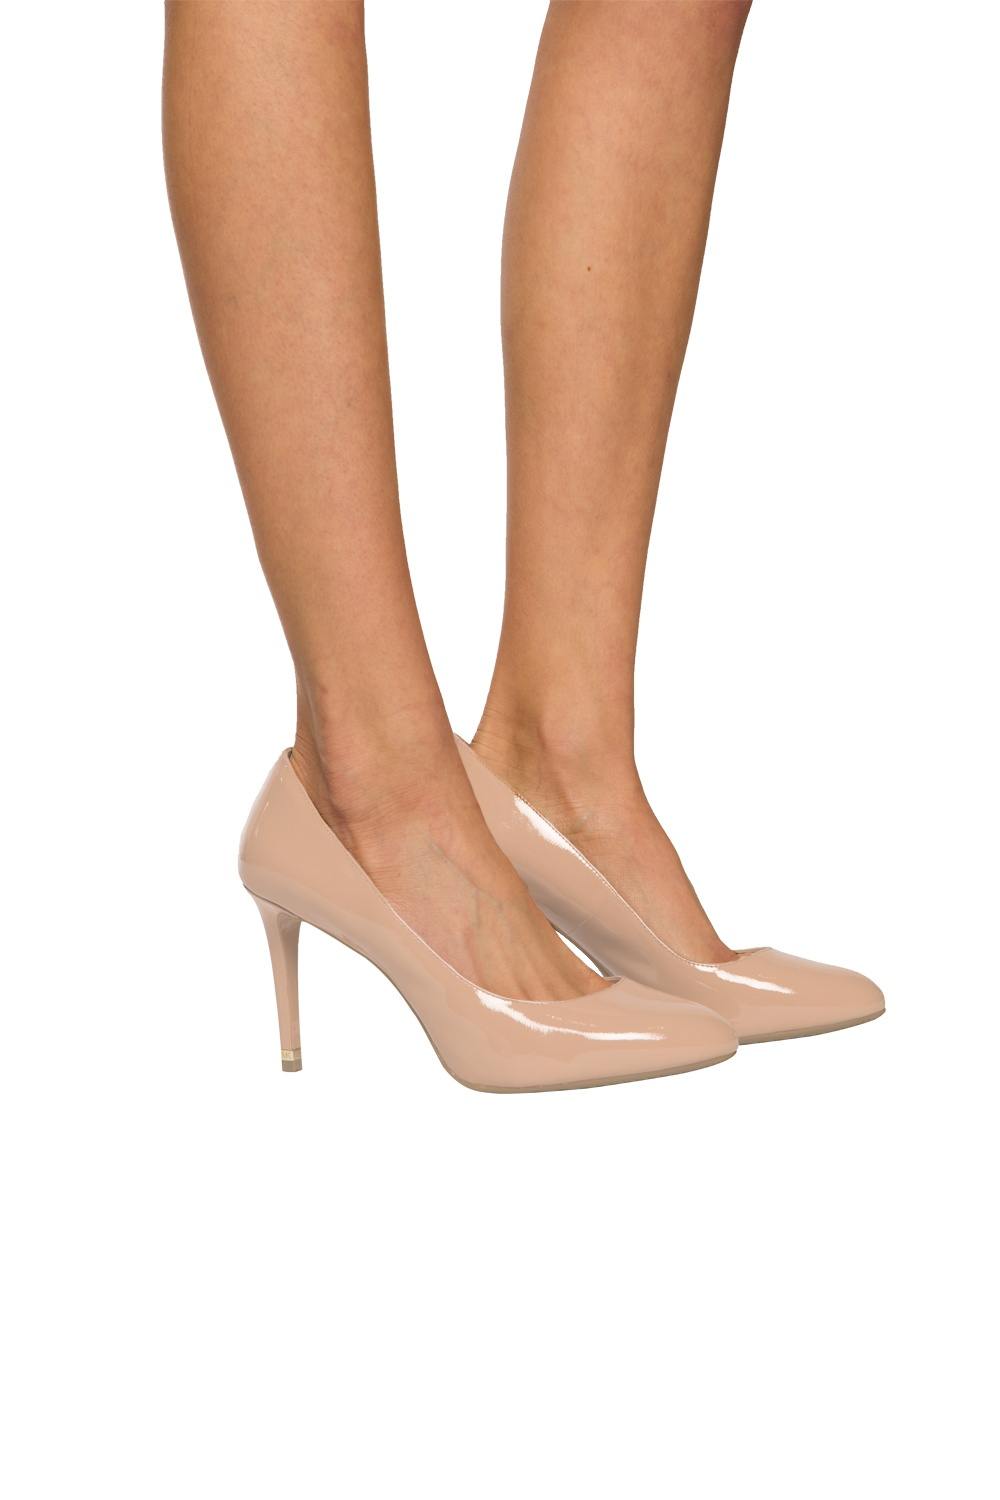 Michael Michael Kors 'Ashby' pumps